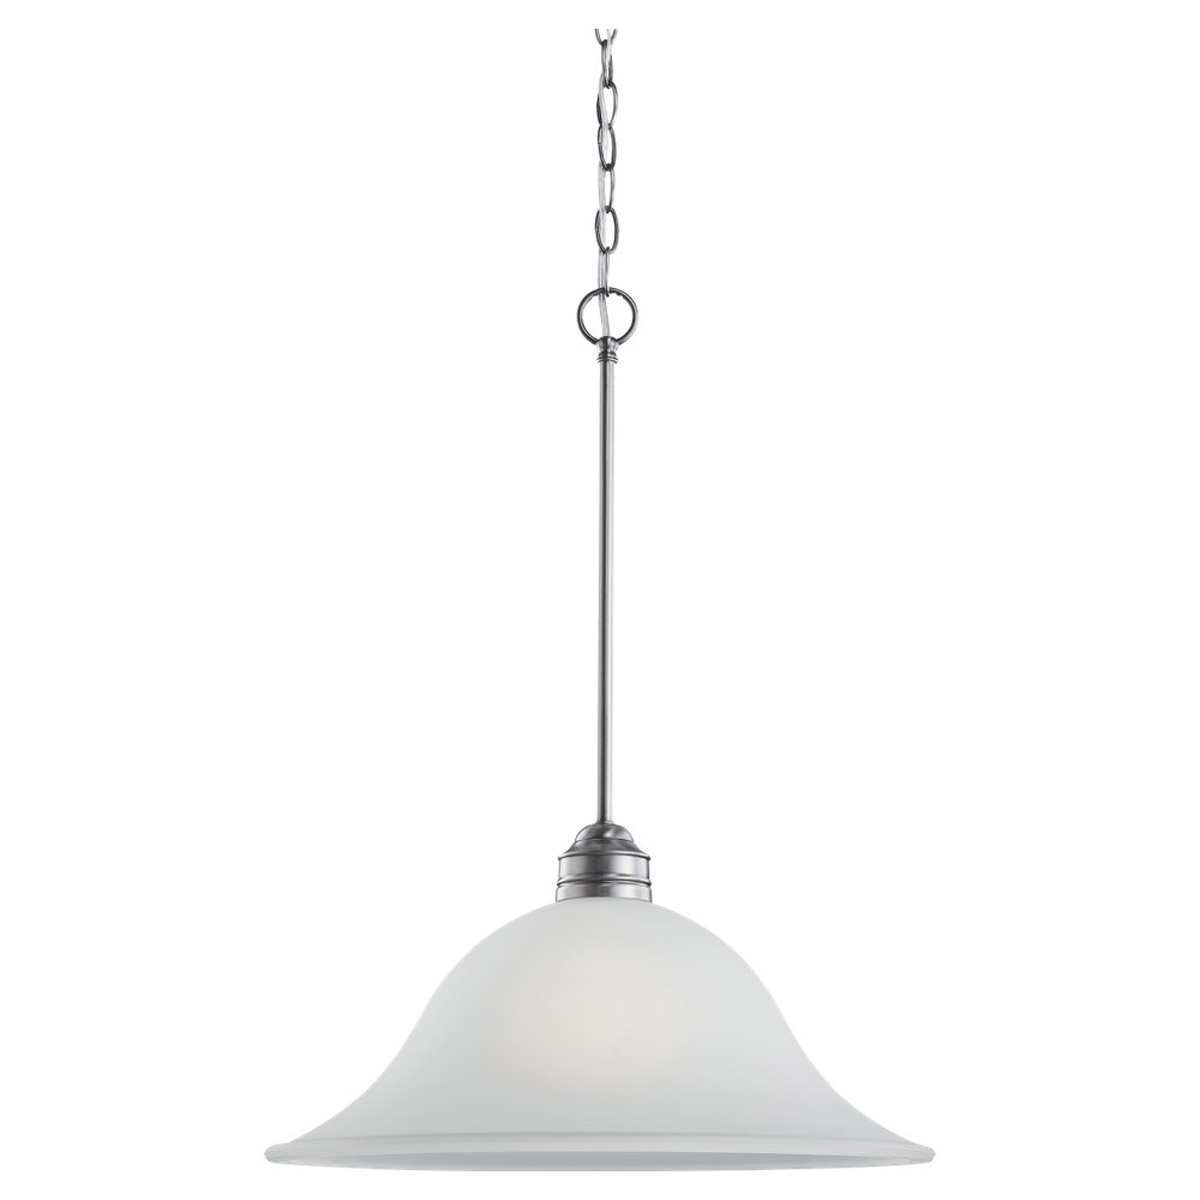 Sea Gull Lighting Gladstone 1 Light Pendant in Antique Brushed Nickel 65850BLE-965